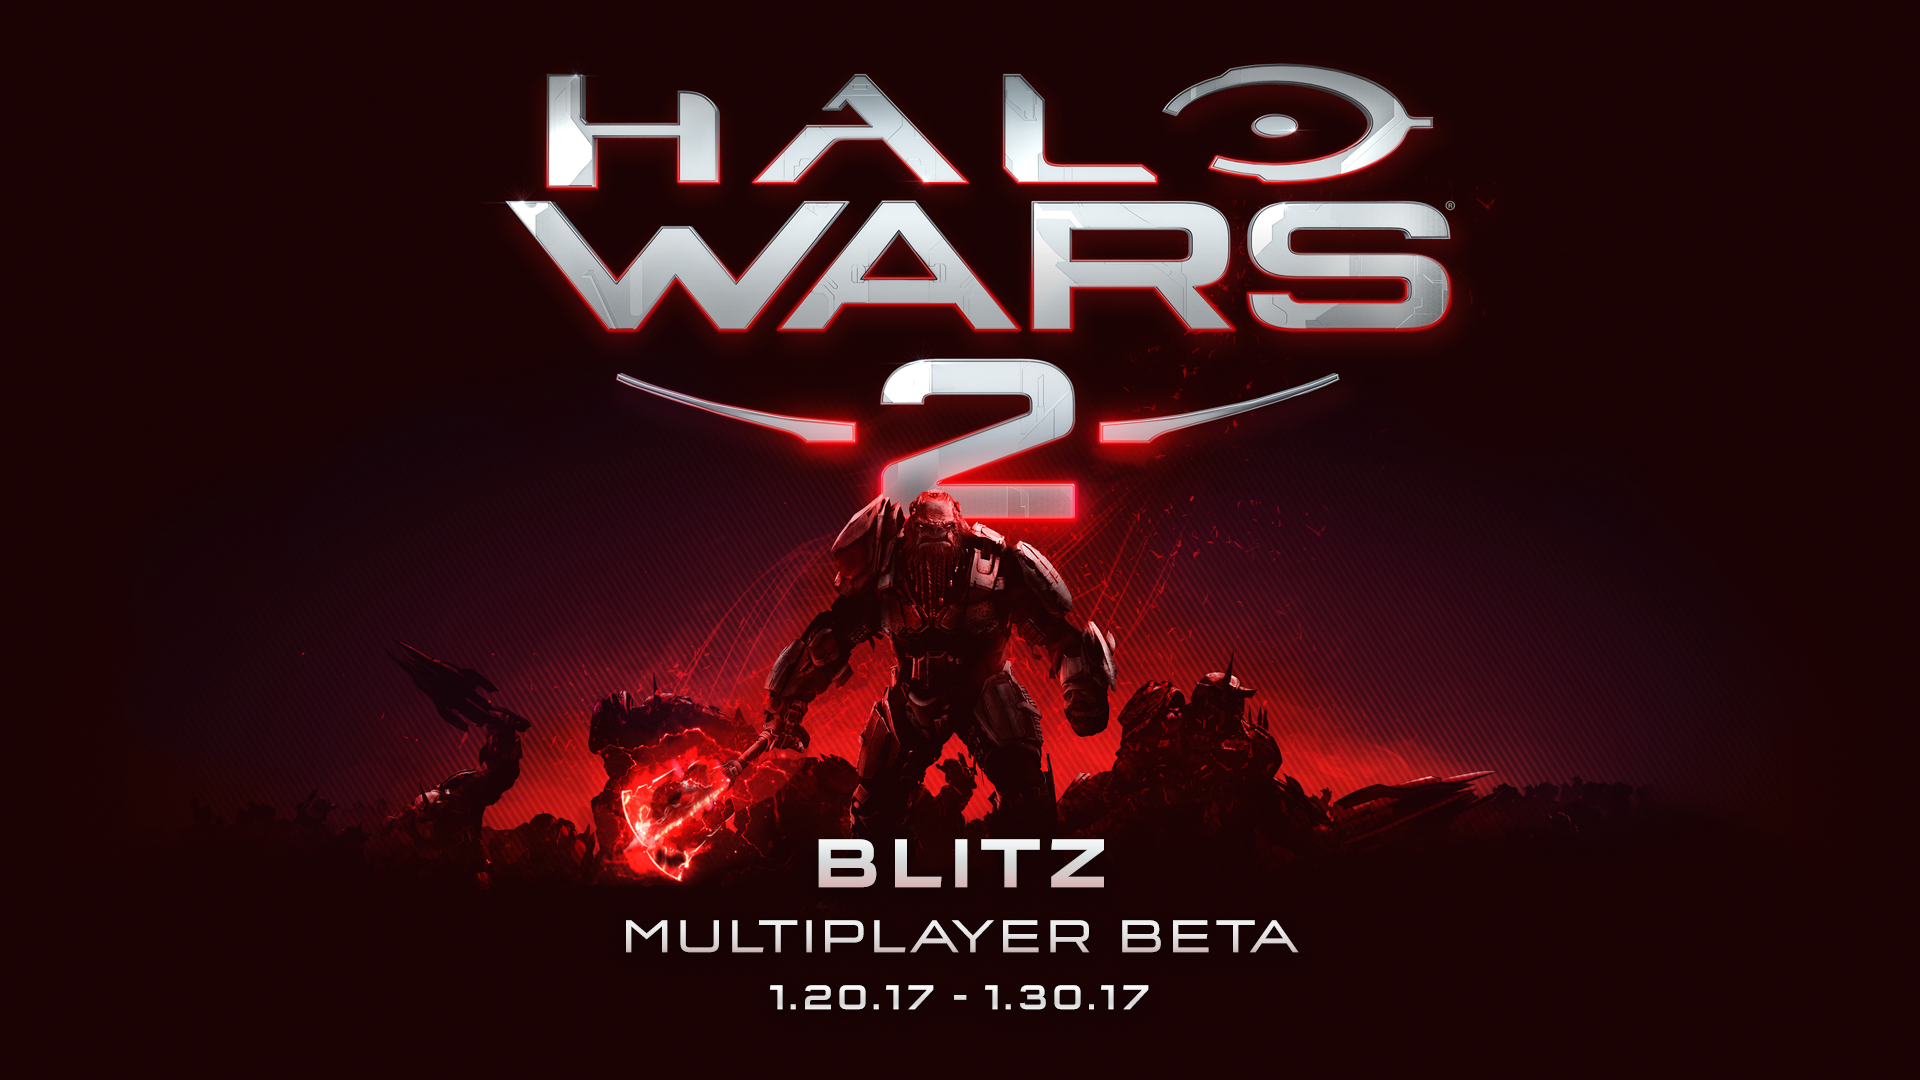 Video forHalo Wars 2 Blitz Beta Coming January 20